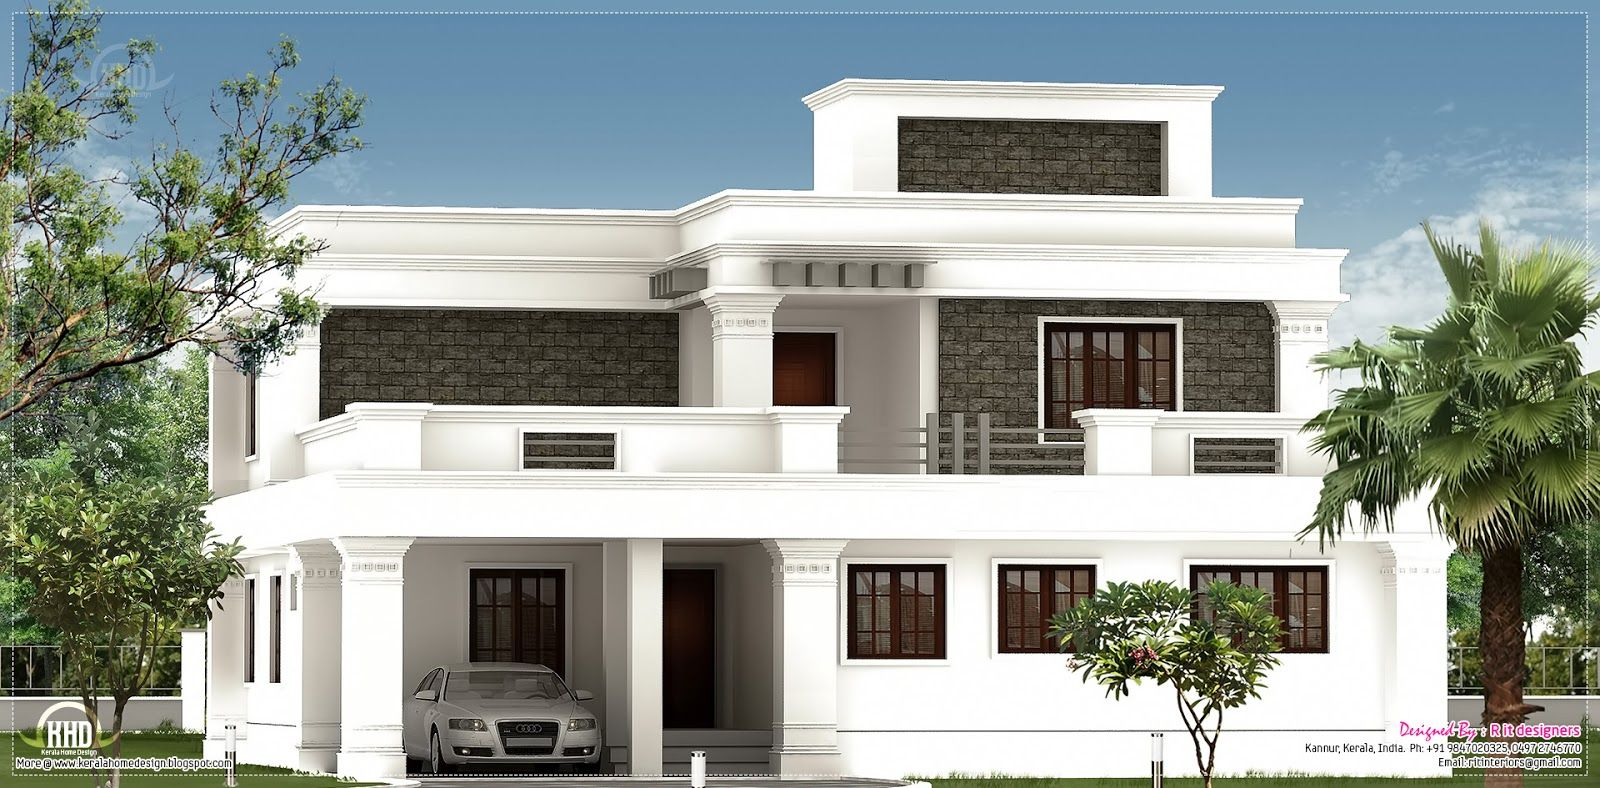 Flat roof homes designs flat roof villa exterior in 2400 for Design the exterior of a house online